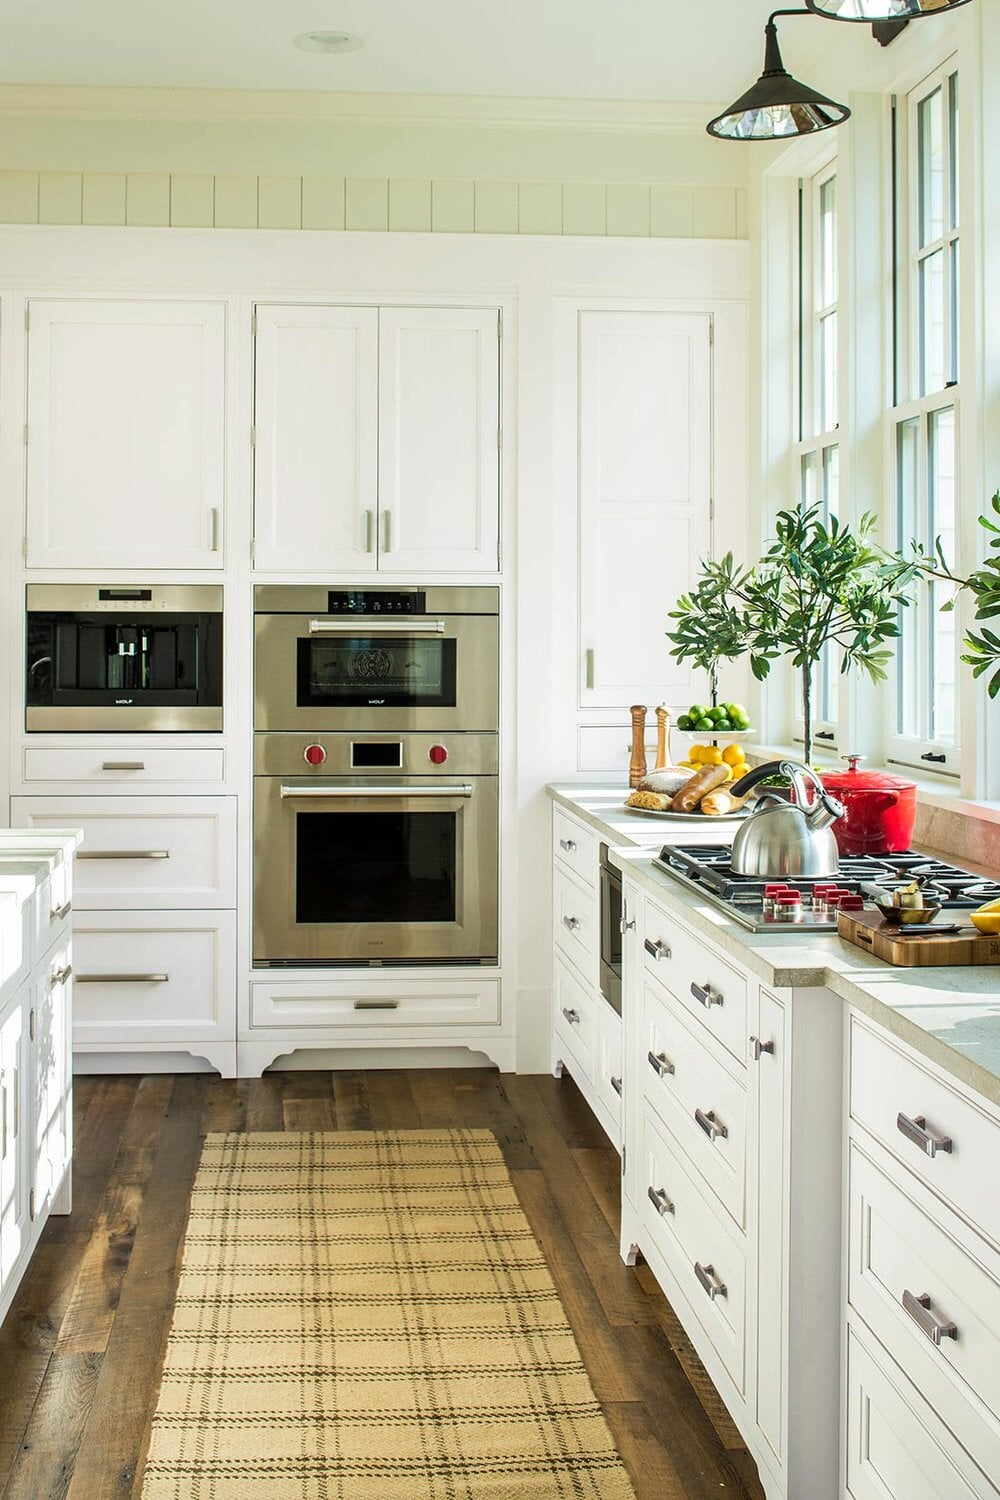 New cabinetry in kitchen remodel in Huntersville, NC from LITTLE Wood Flooring & Cabinetry